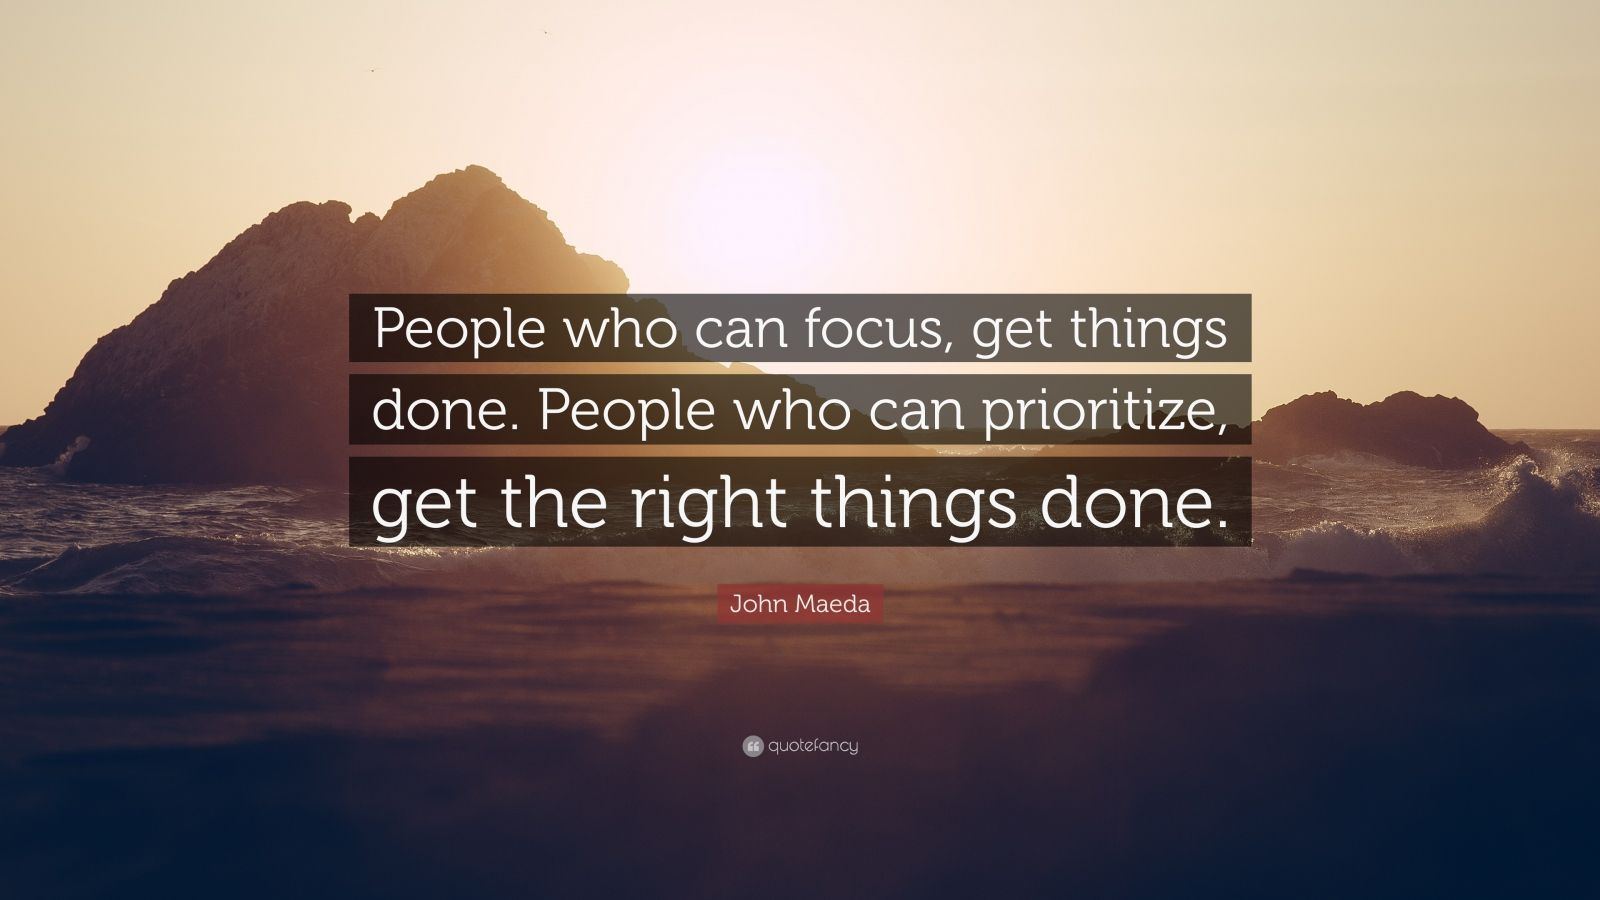 """John Maeda Quote: """"People who can focus, get things done. People who can prioritize, get the right things done."""""""